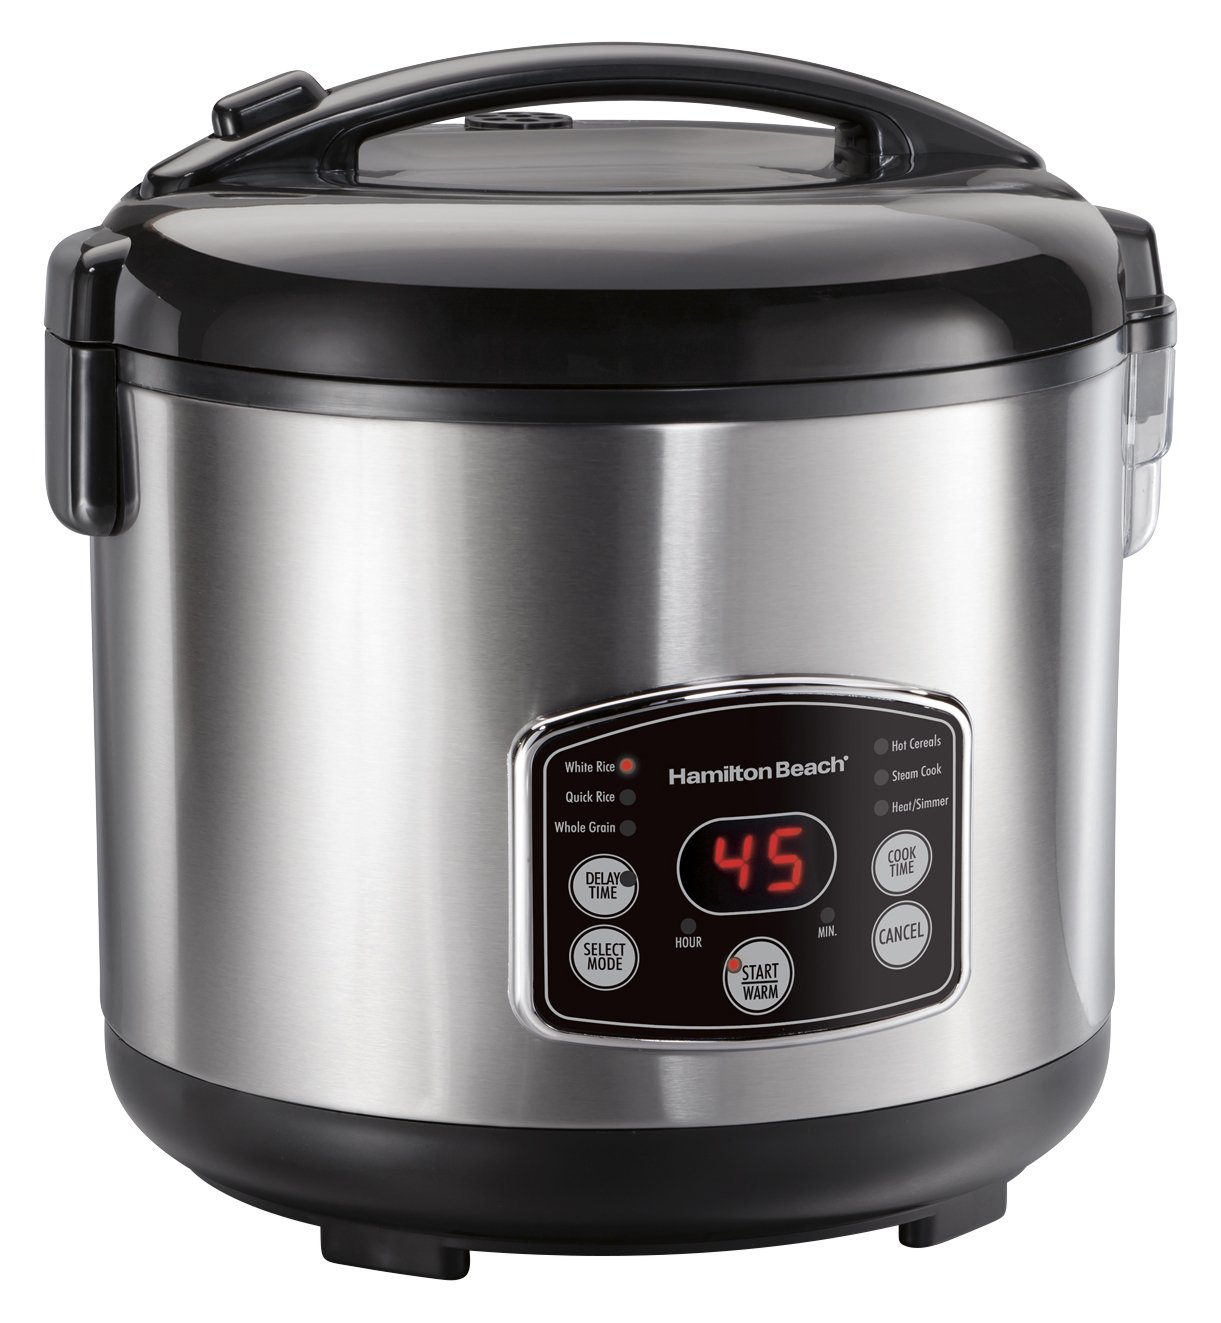 Hamilton Beach (37548) Rice Cooker, 7 Cups uncooked resulting in 14 Cups Cooked with Steam & Rinse Basket